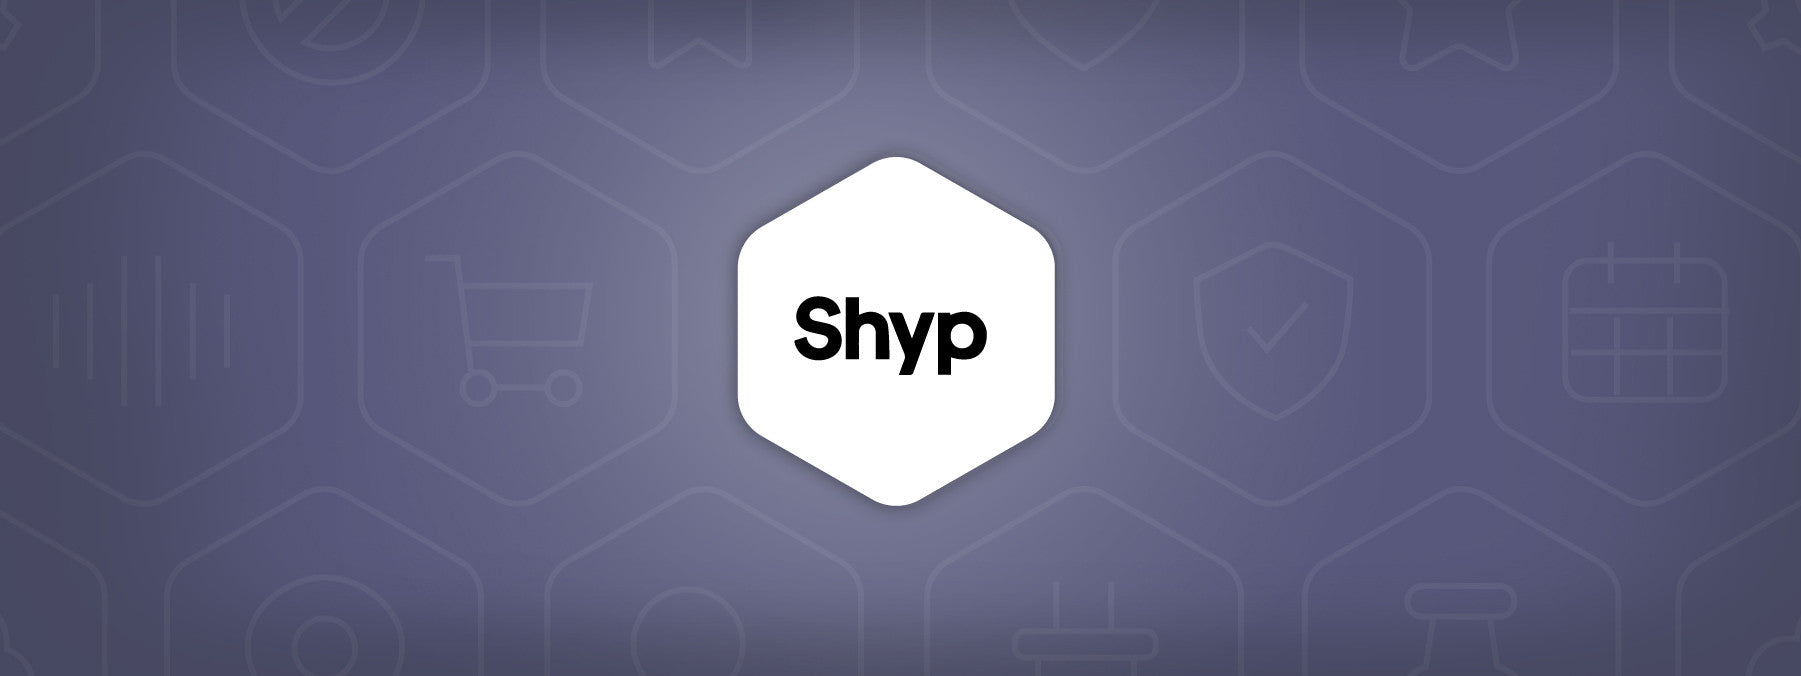 Shyp section image